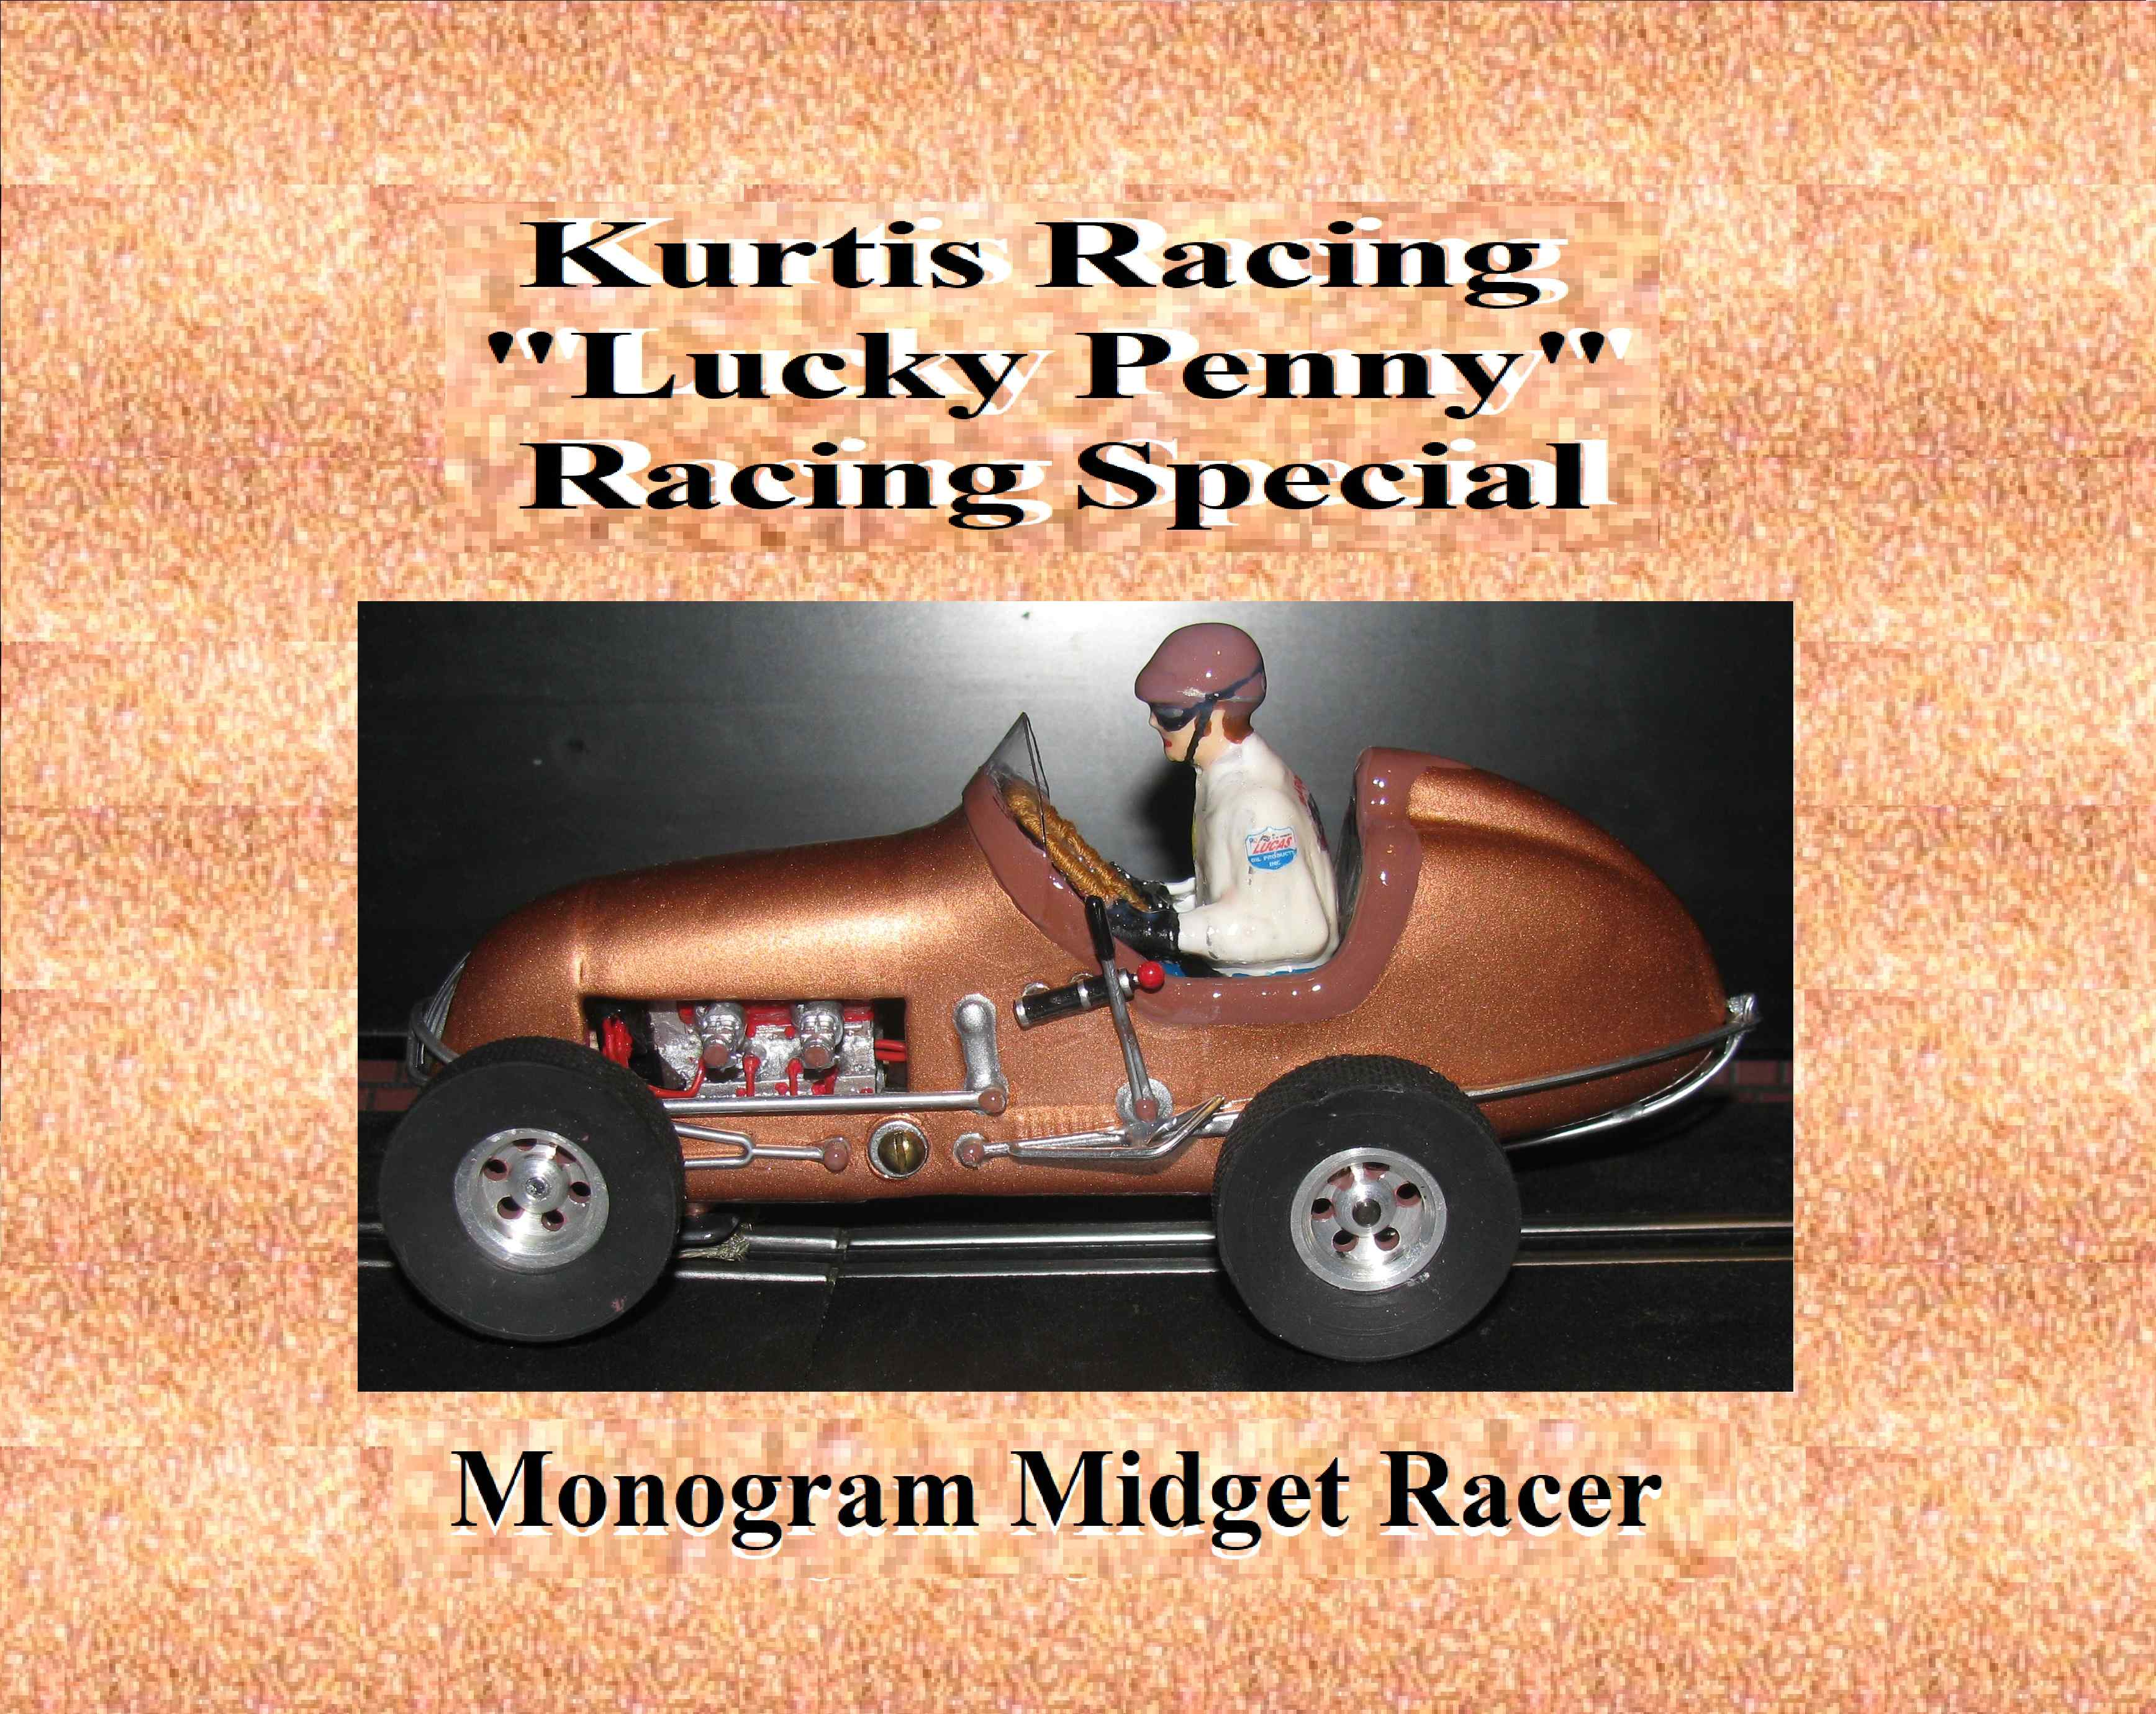 *SOLD* * SPECIAL EASTER PRICE FOR CHARLES E.*  Monogram Midget Racer Lucky Penny Kurtis Racing Special Slot Car 1:24 Scale